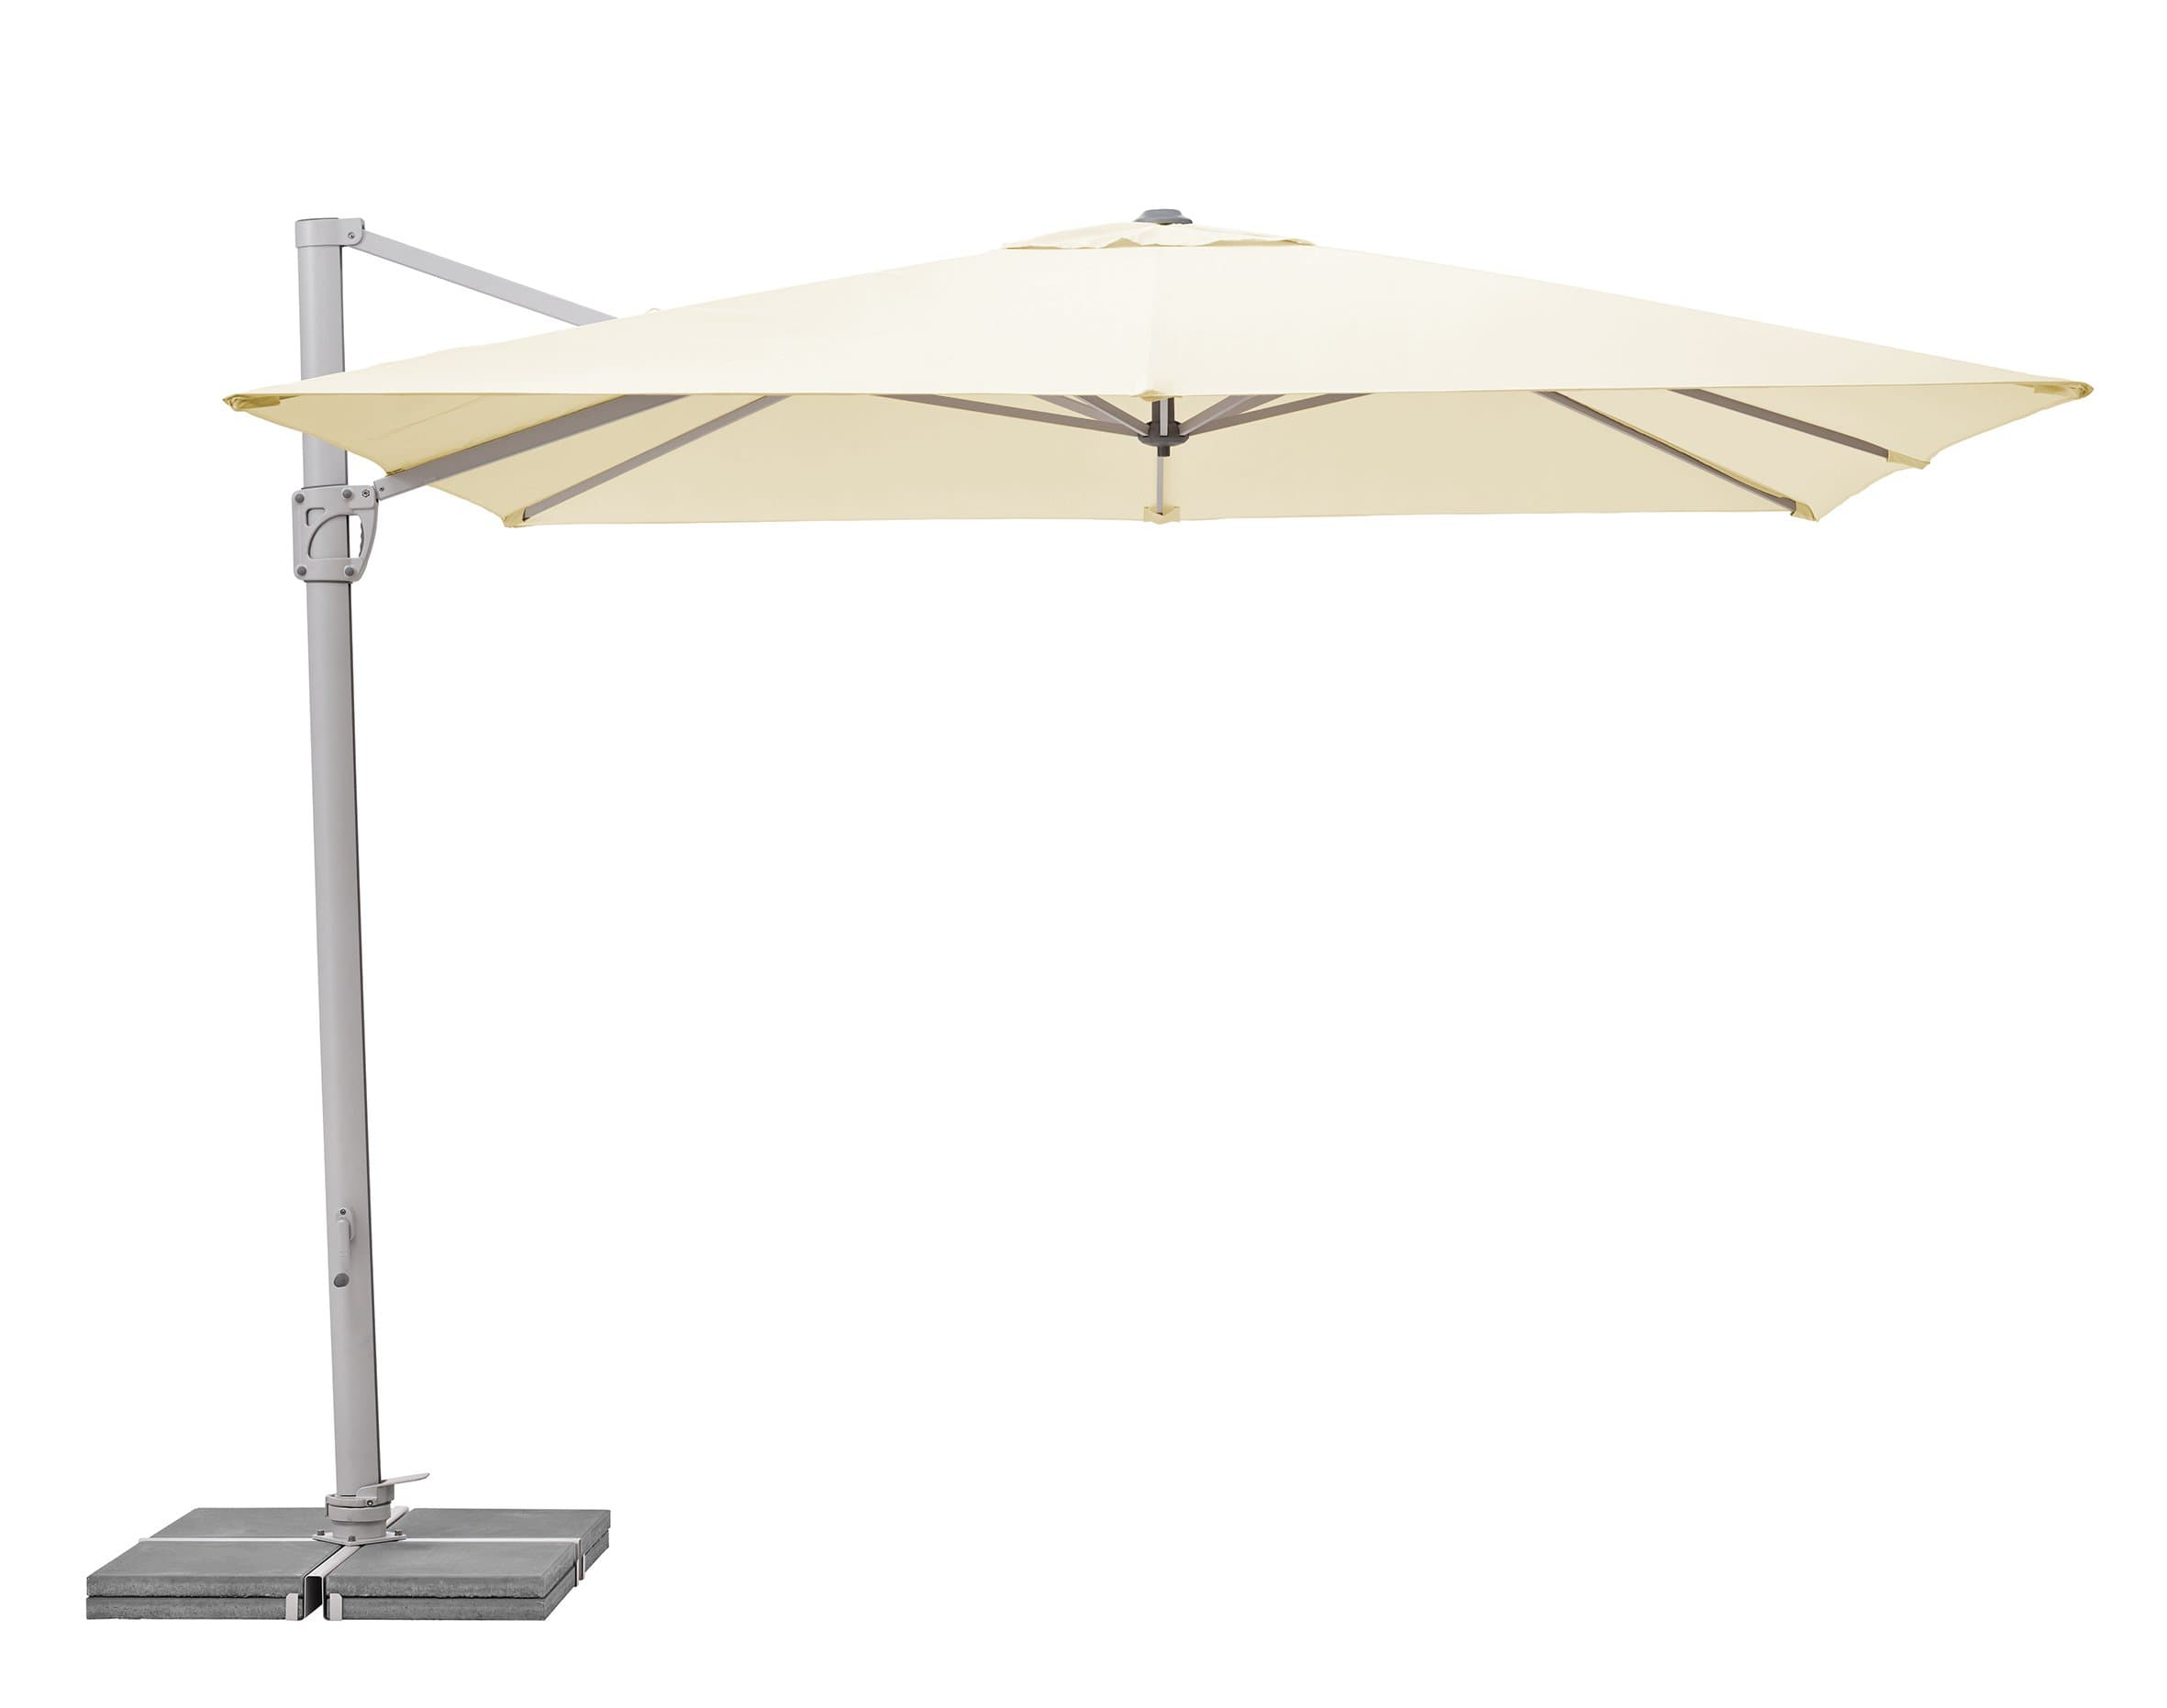 suncomfort by glatz sunflex parasol 300 x 300 migros. Black Bedroom Furniture Sets. Home Design Ideas